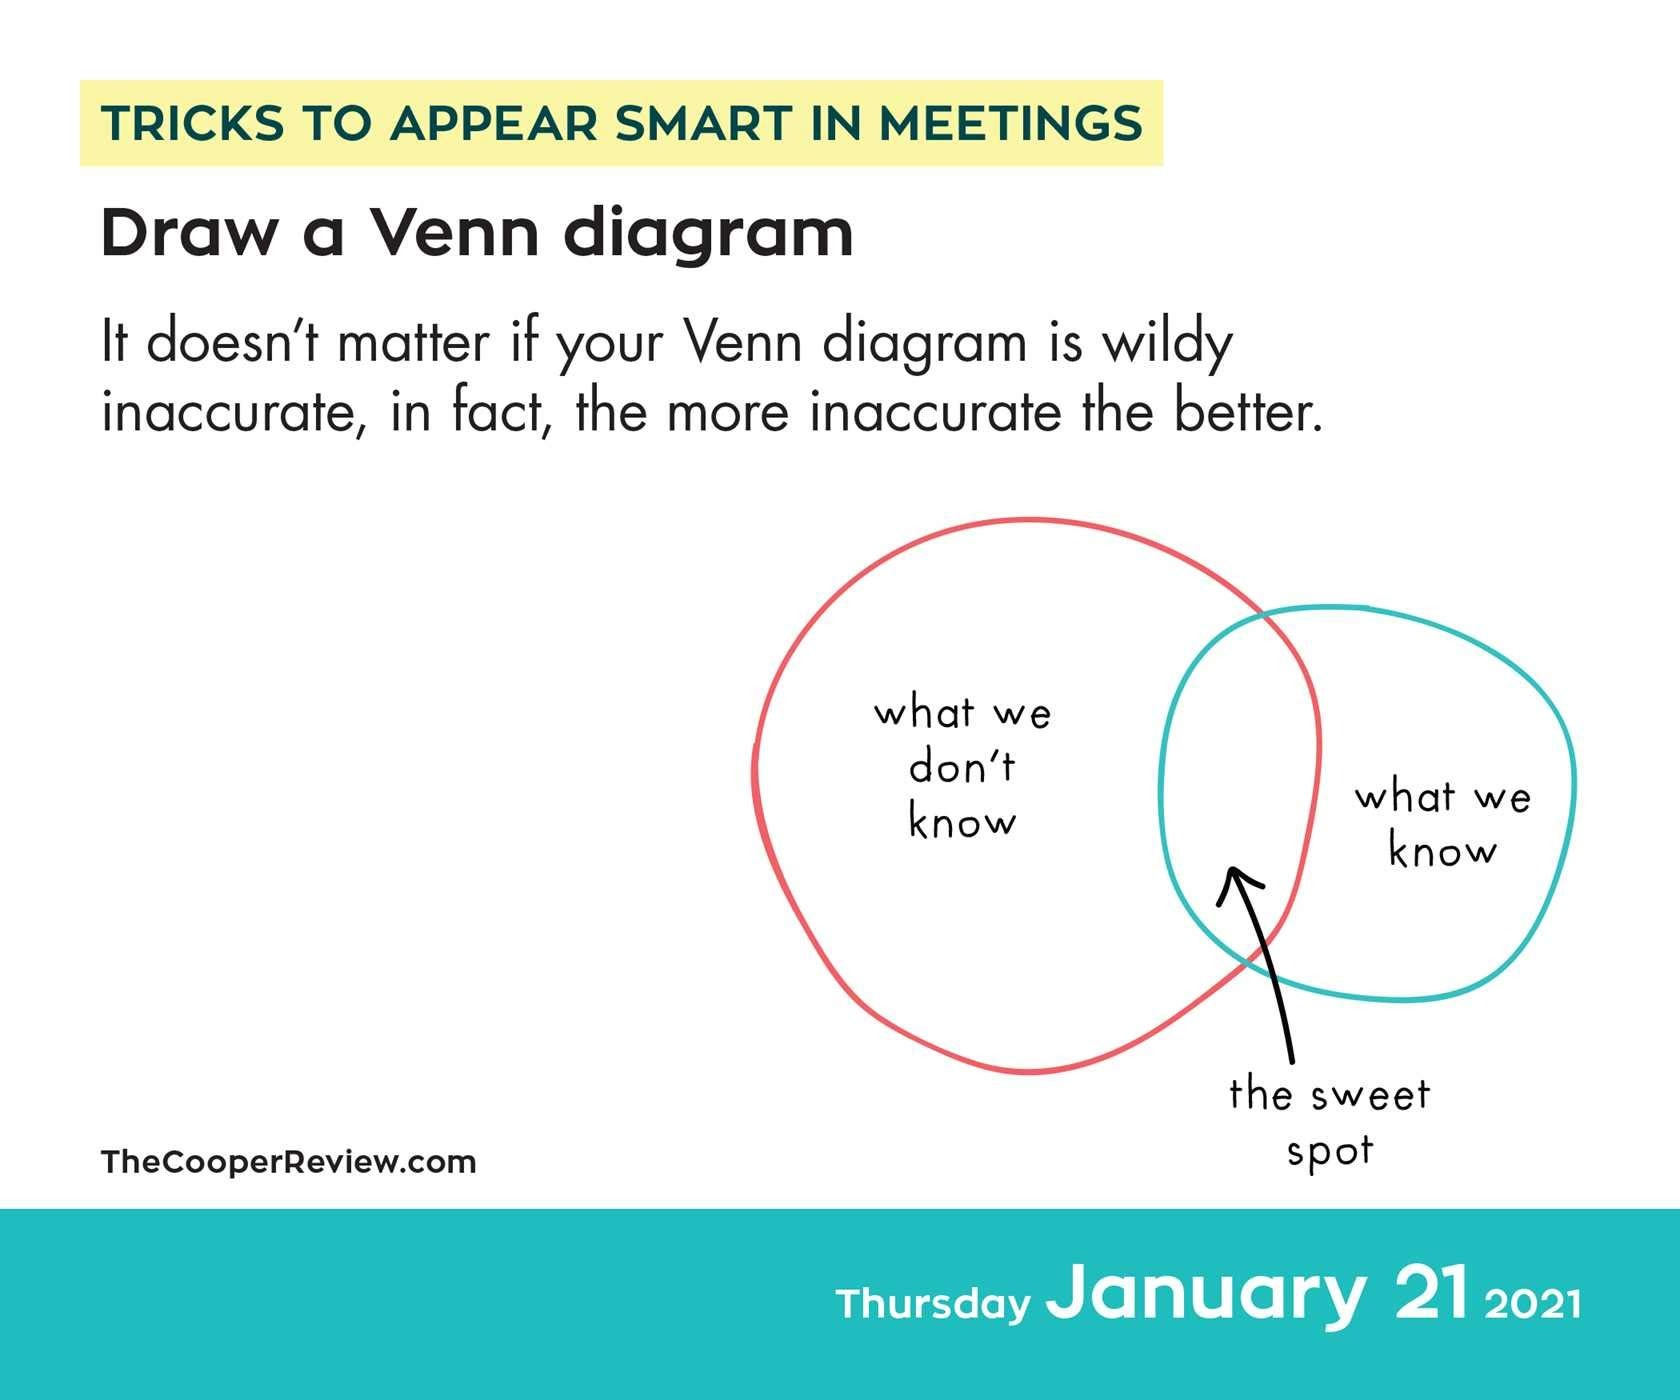 Tricks to Appear Smart in Meetings 2021 Day-to-Day Calendar By Sarah Cooper